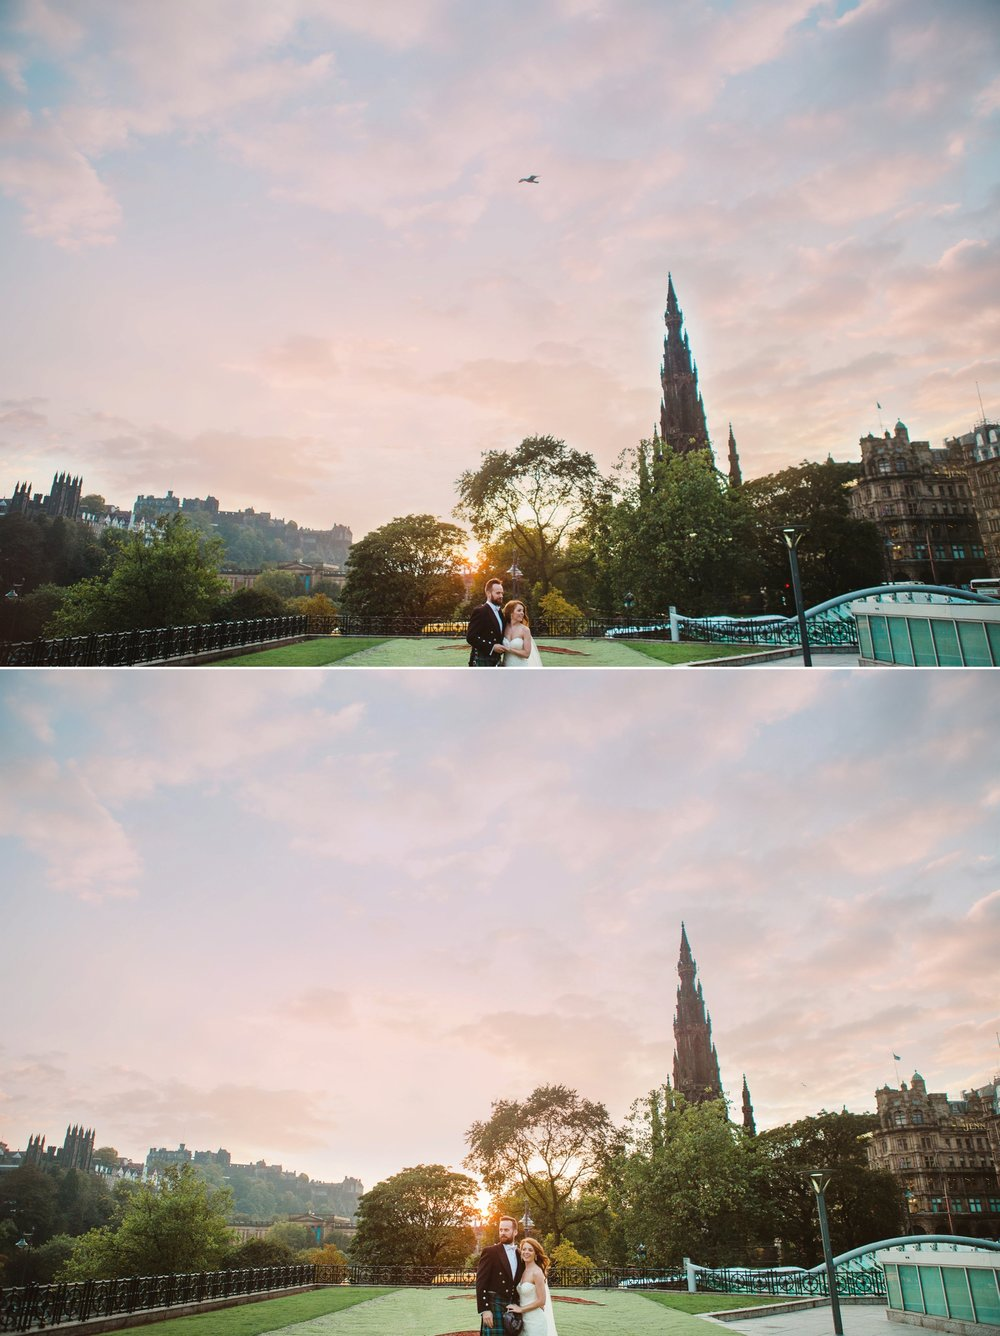 weddingbalmoralhoteledinburgh52-15.jpg